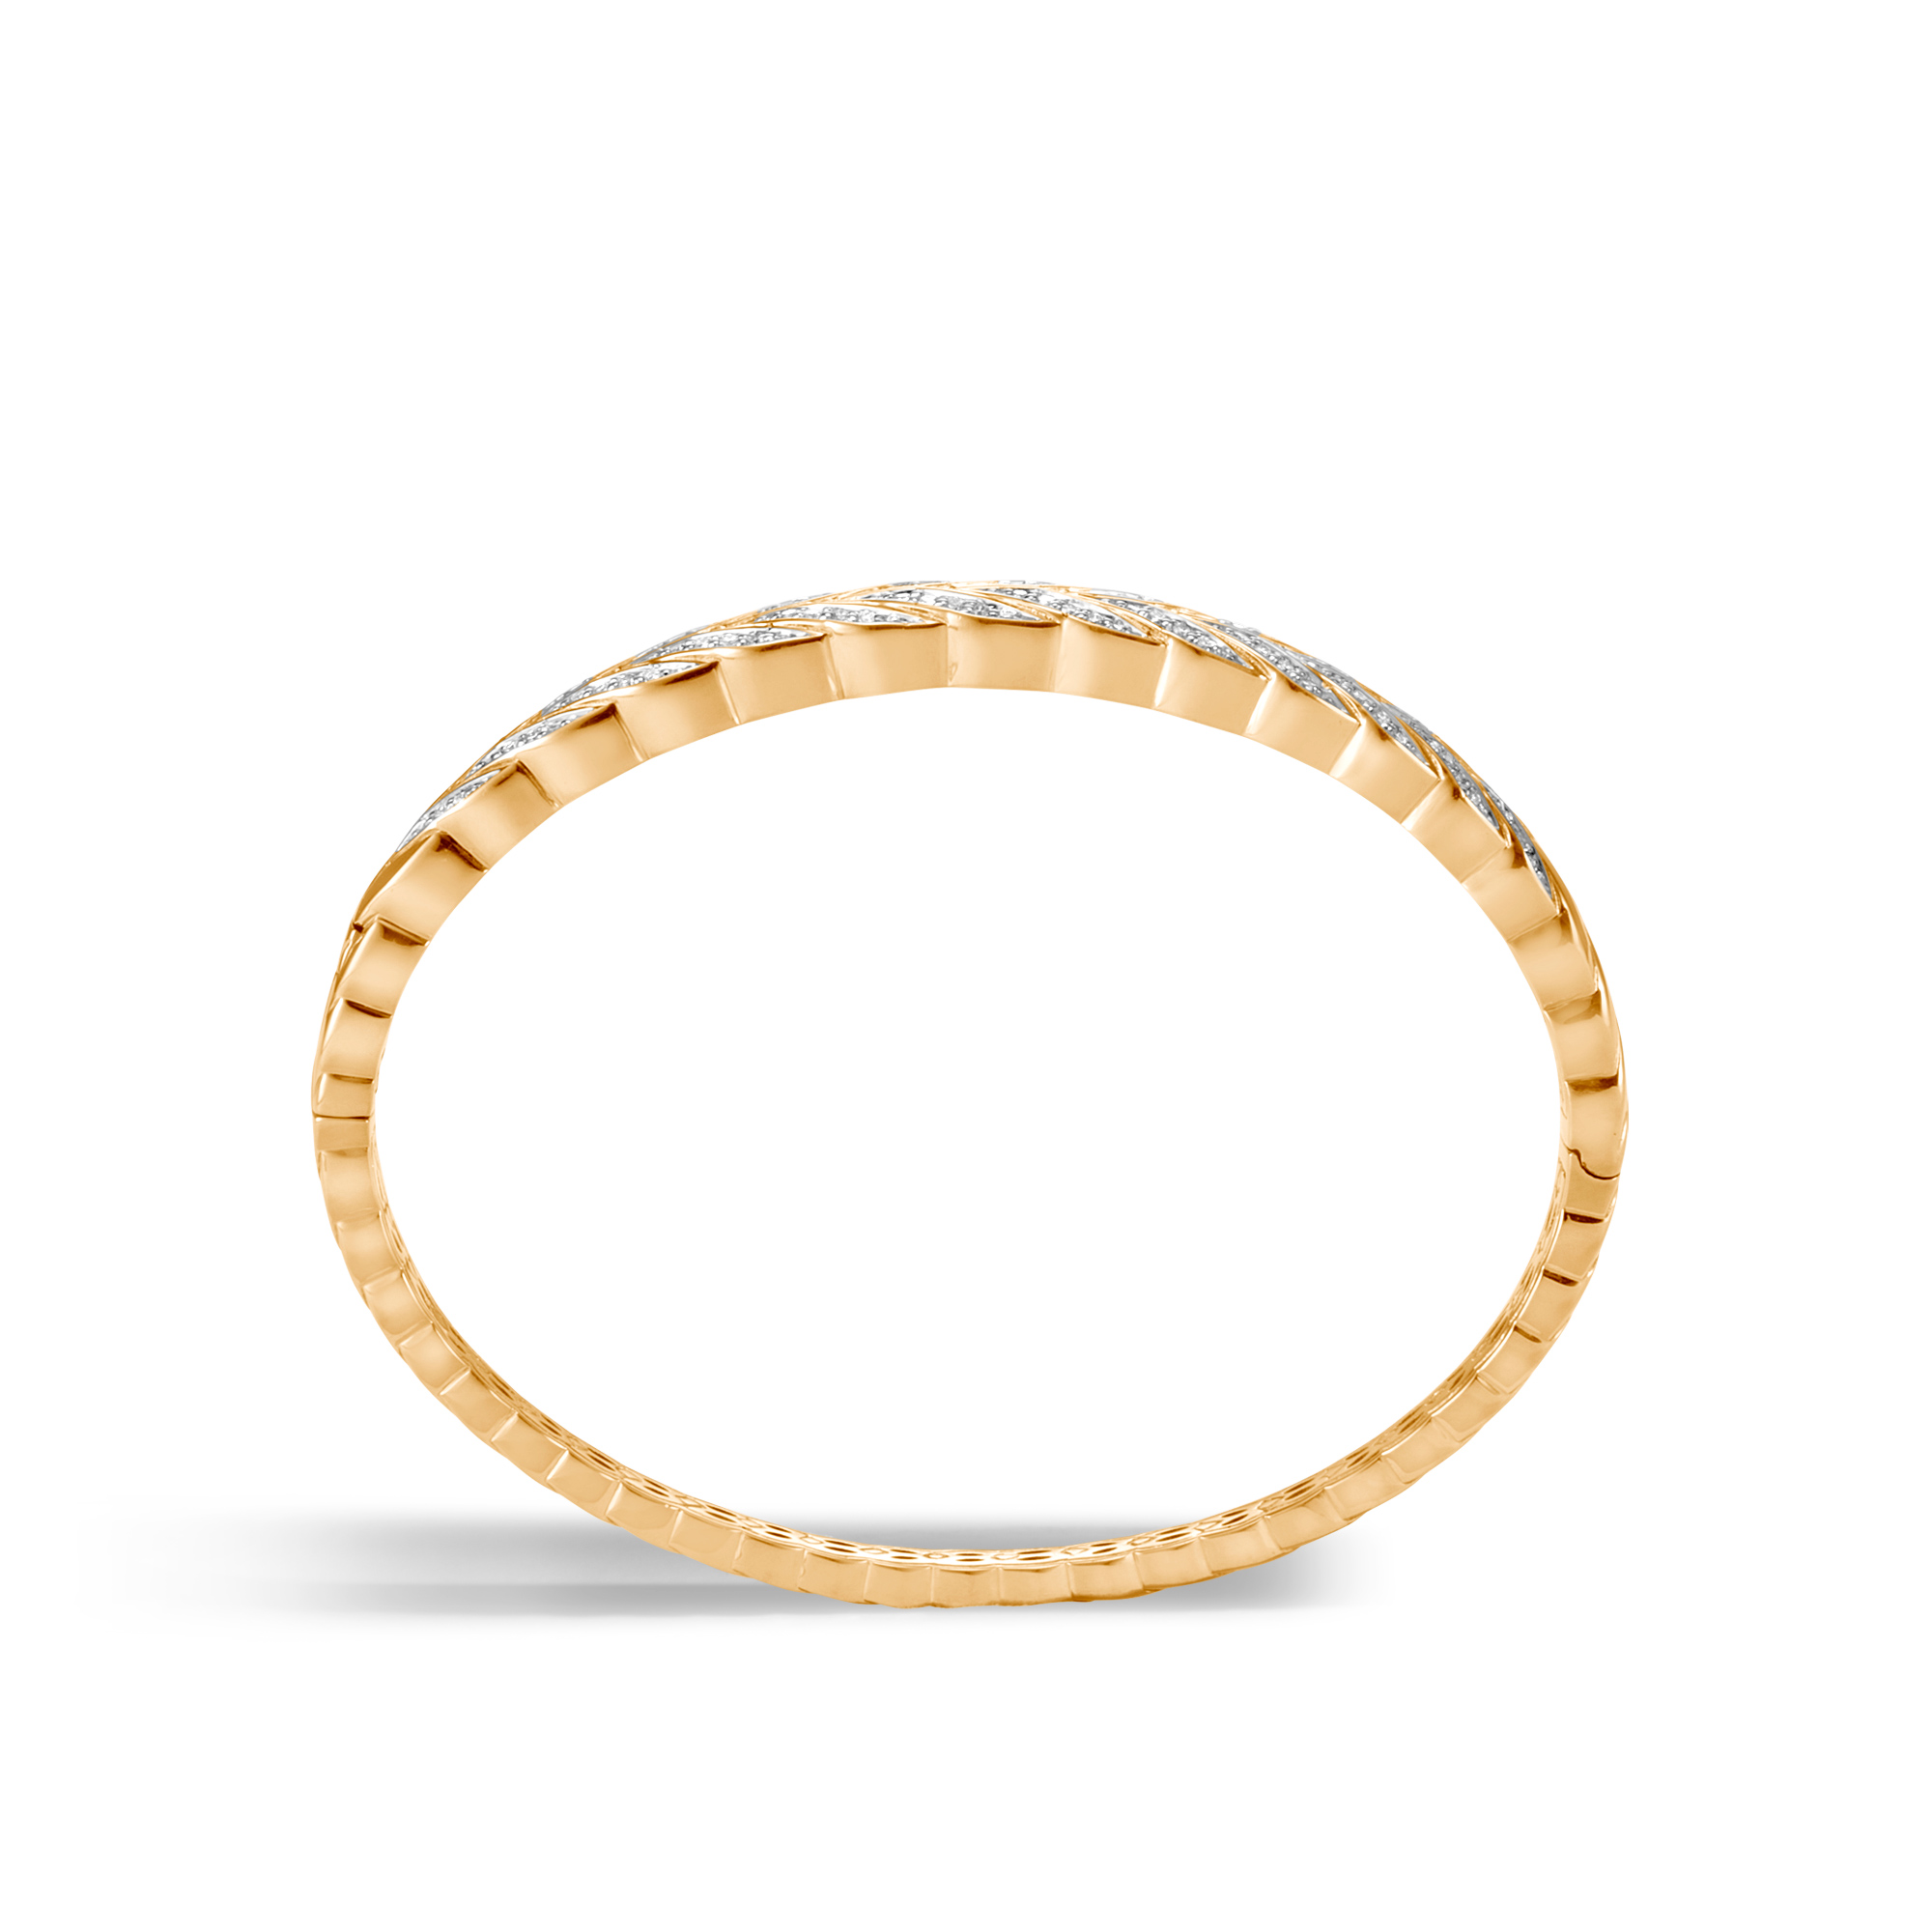 Modern Chain Bangle in 18K Gold with Diamonds, White Diamond, large